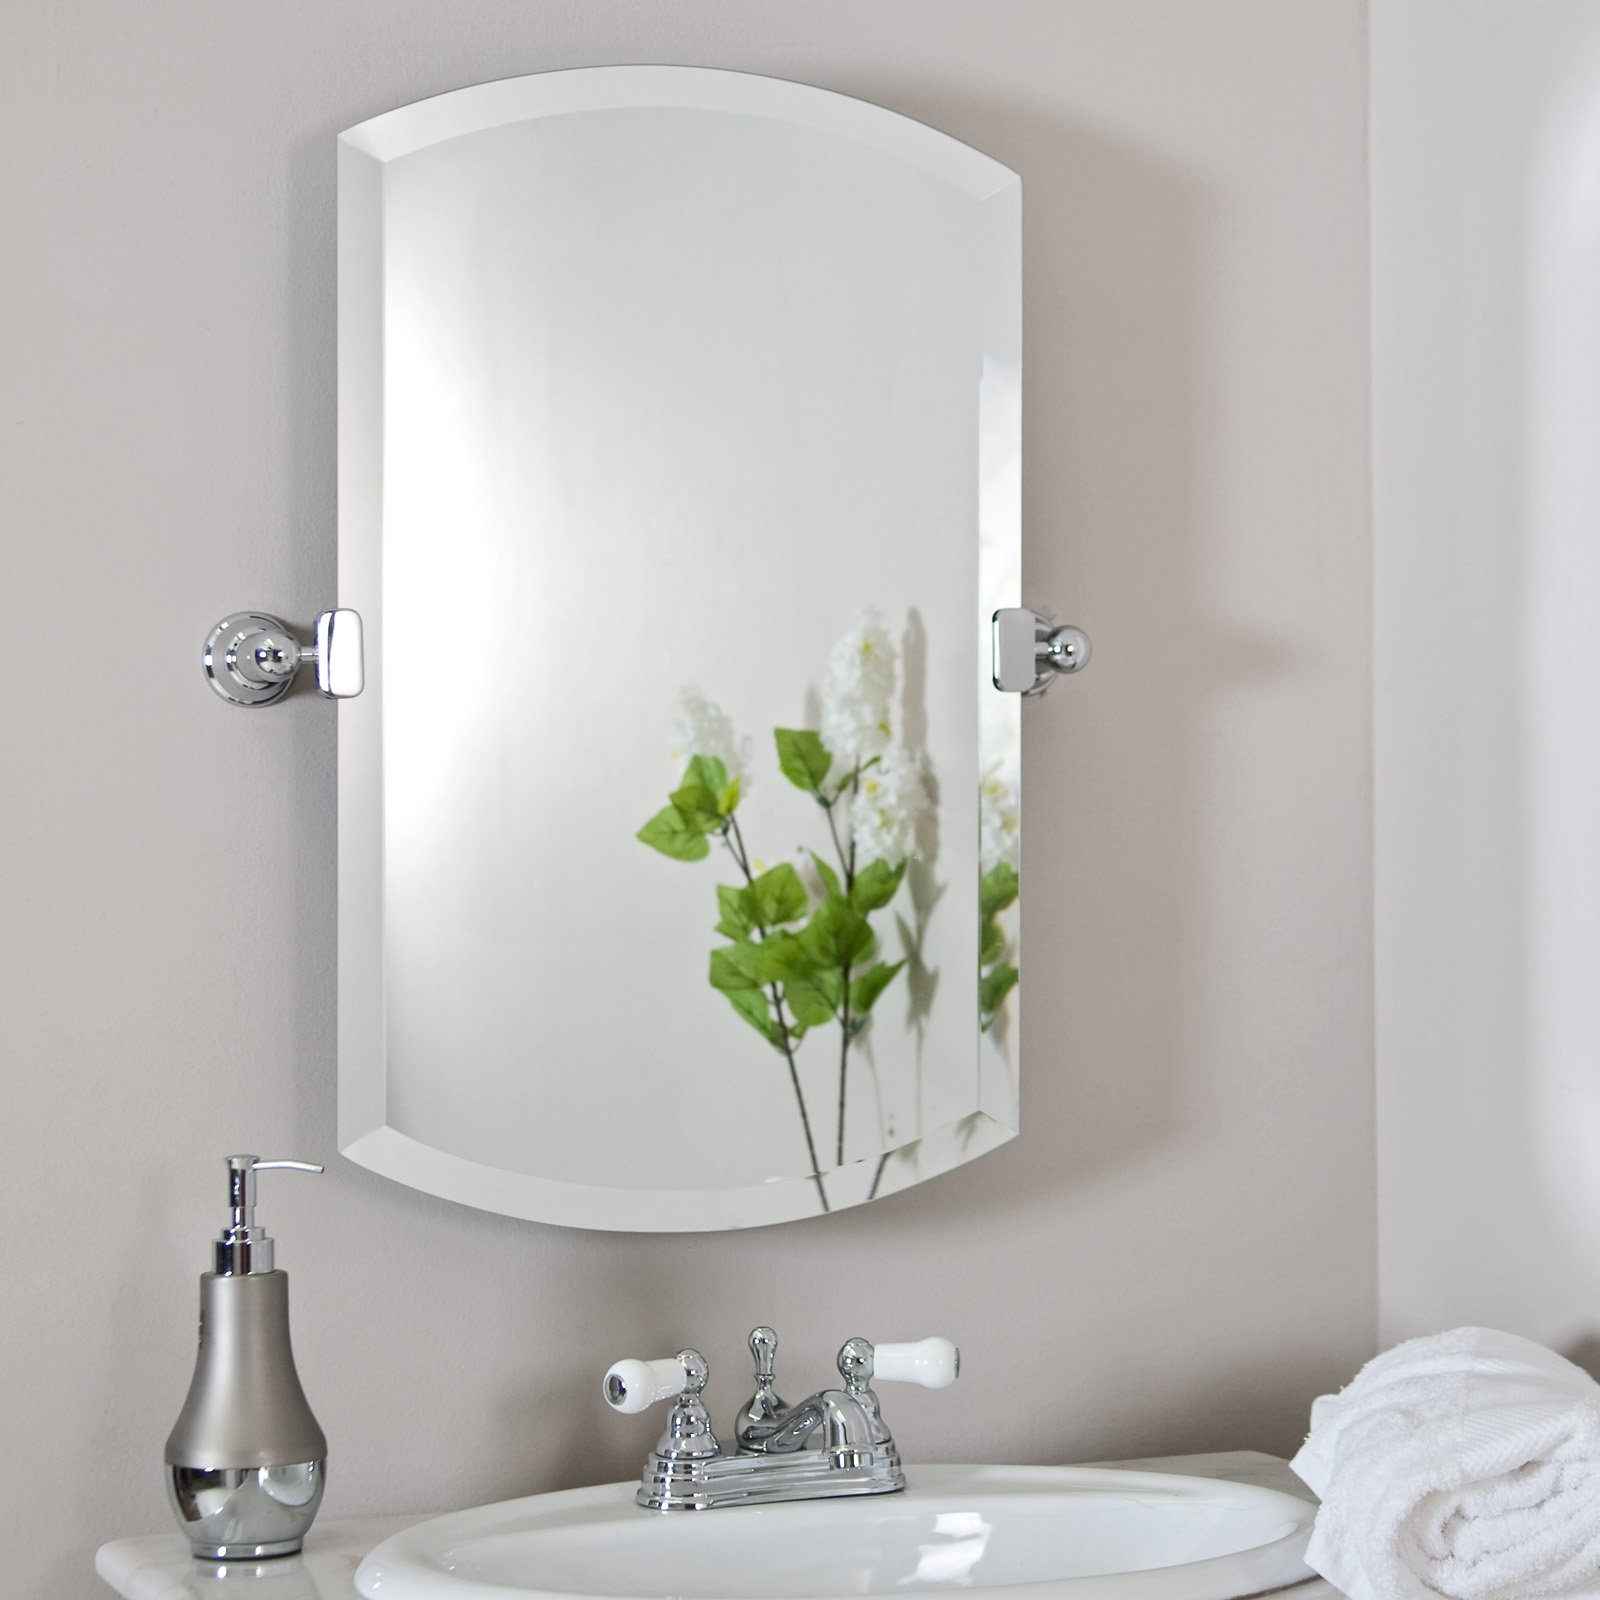 Designs For Bathroom Mirrors